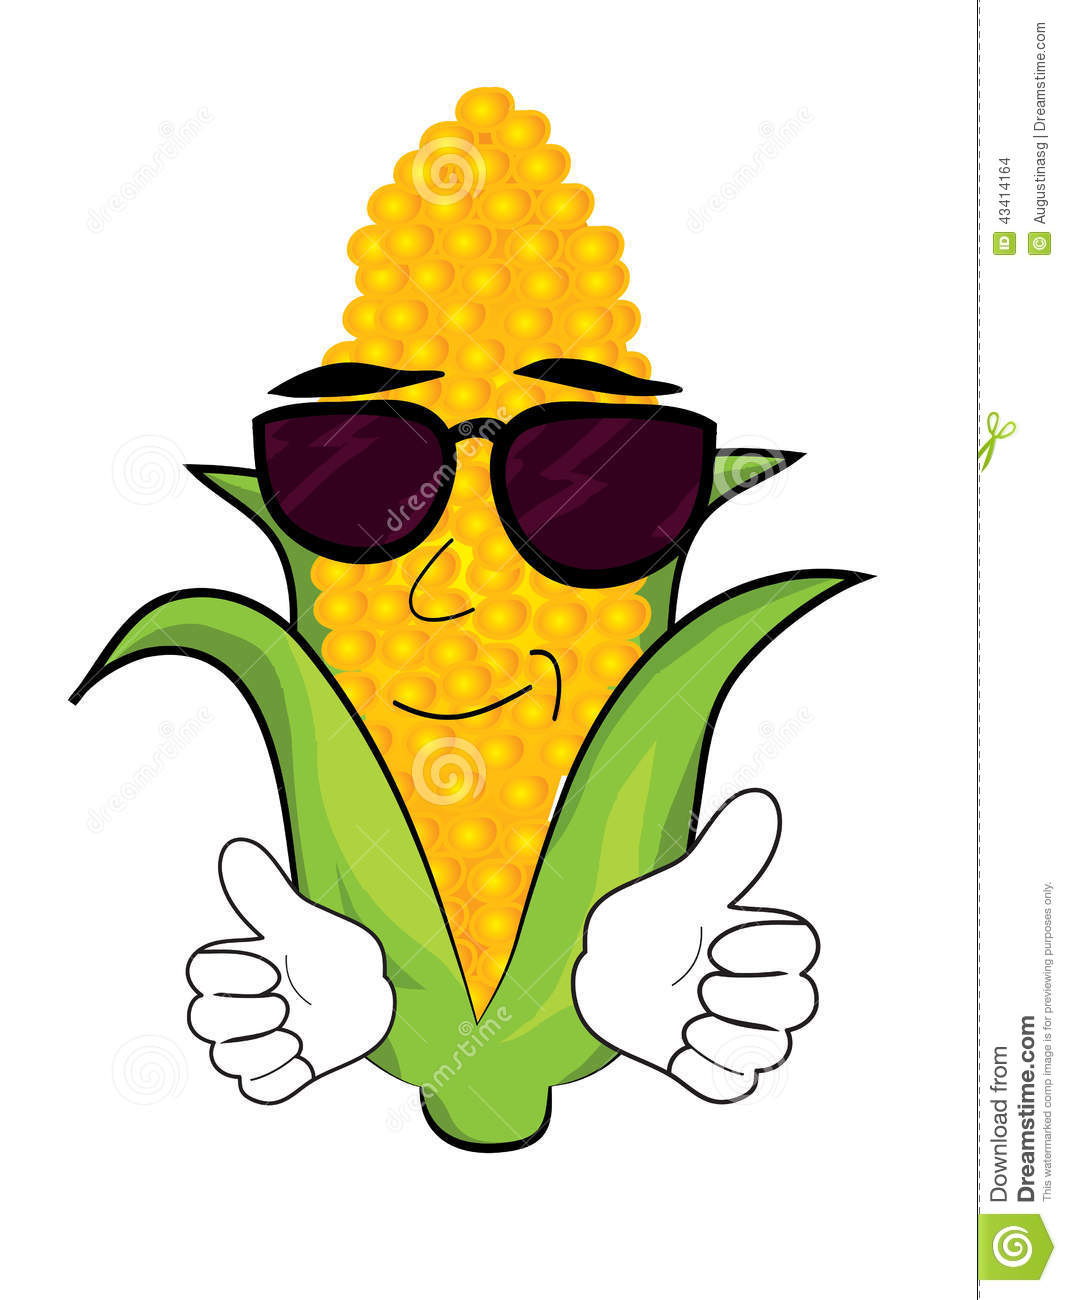 Cool Corn Cartoon Stock Illustration - Image: 43414164